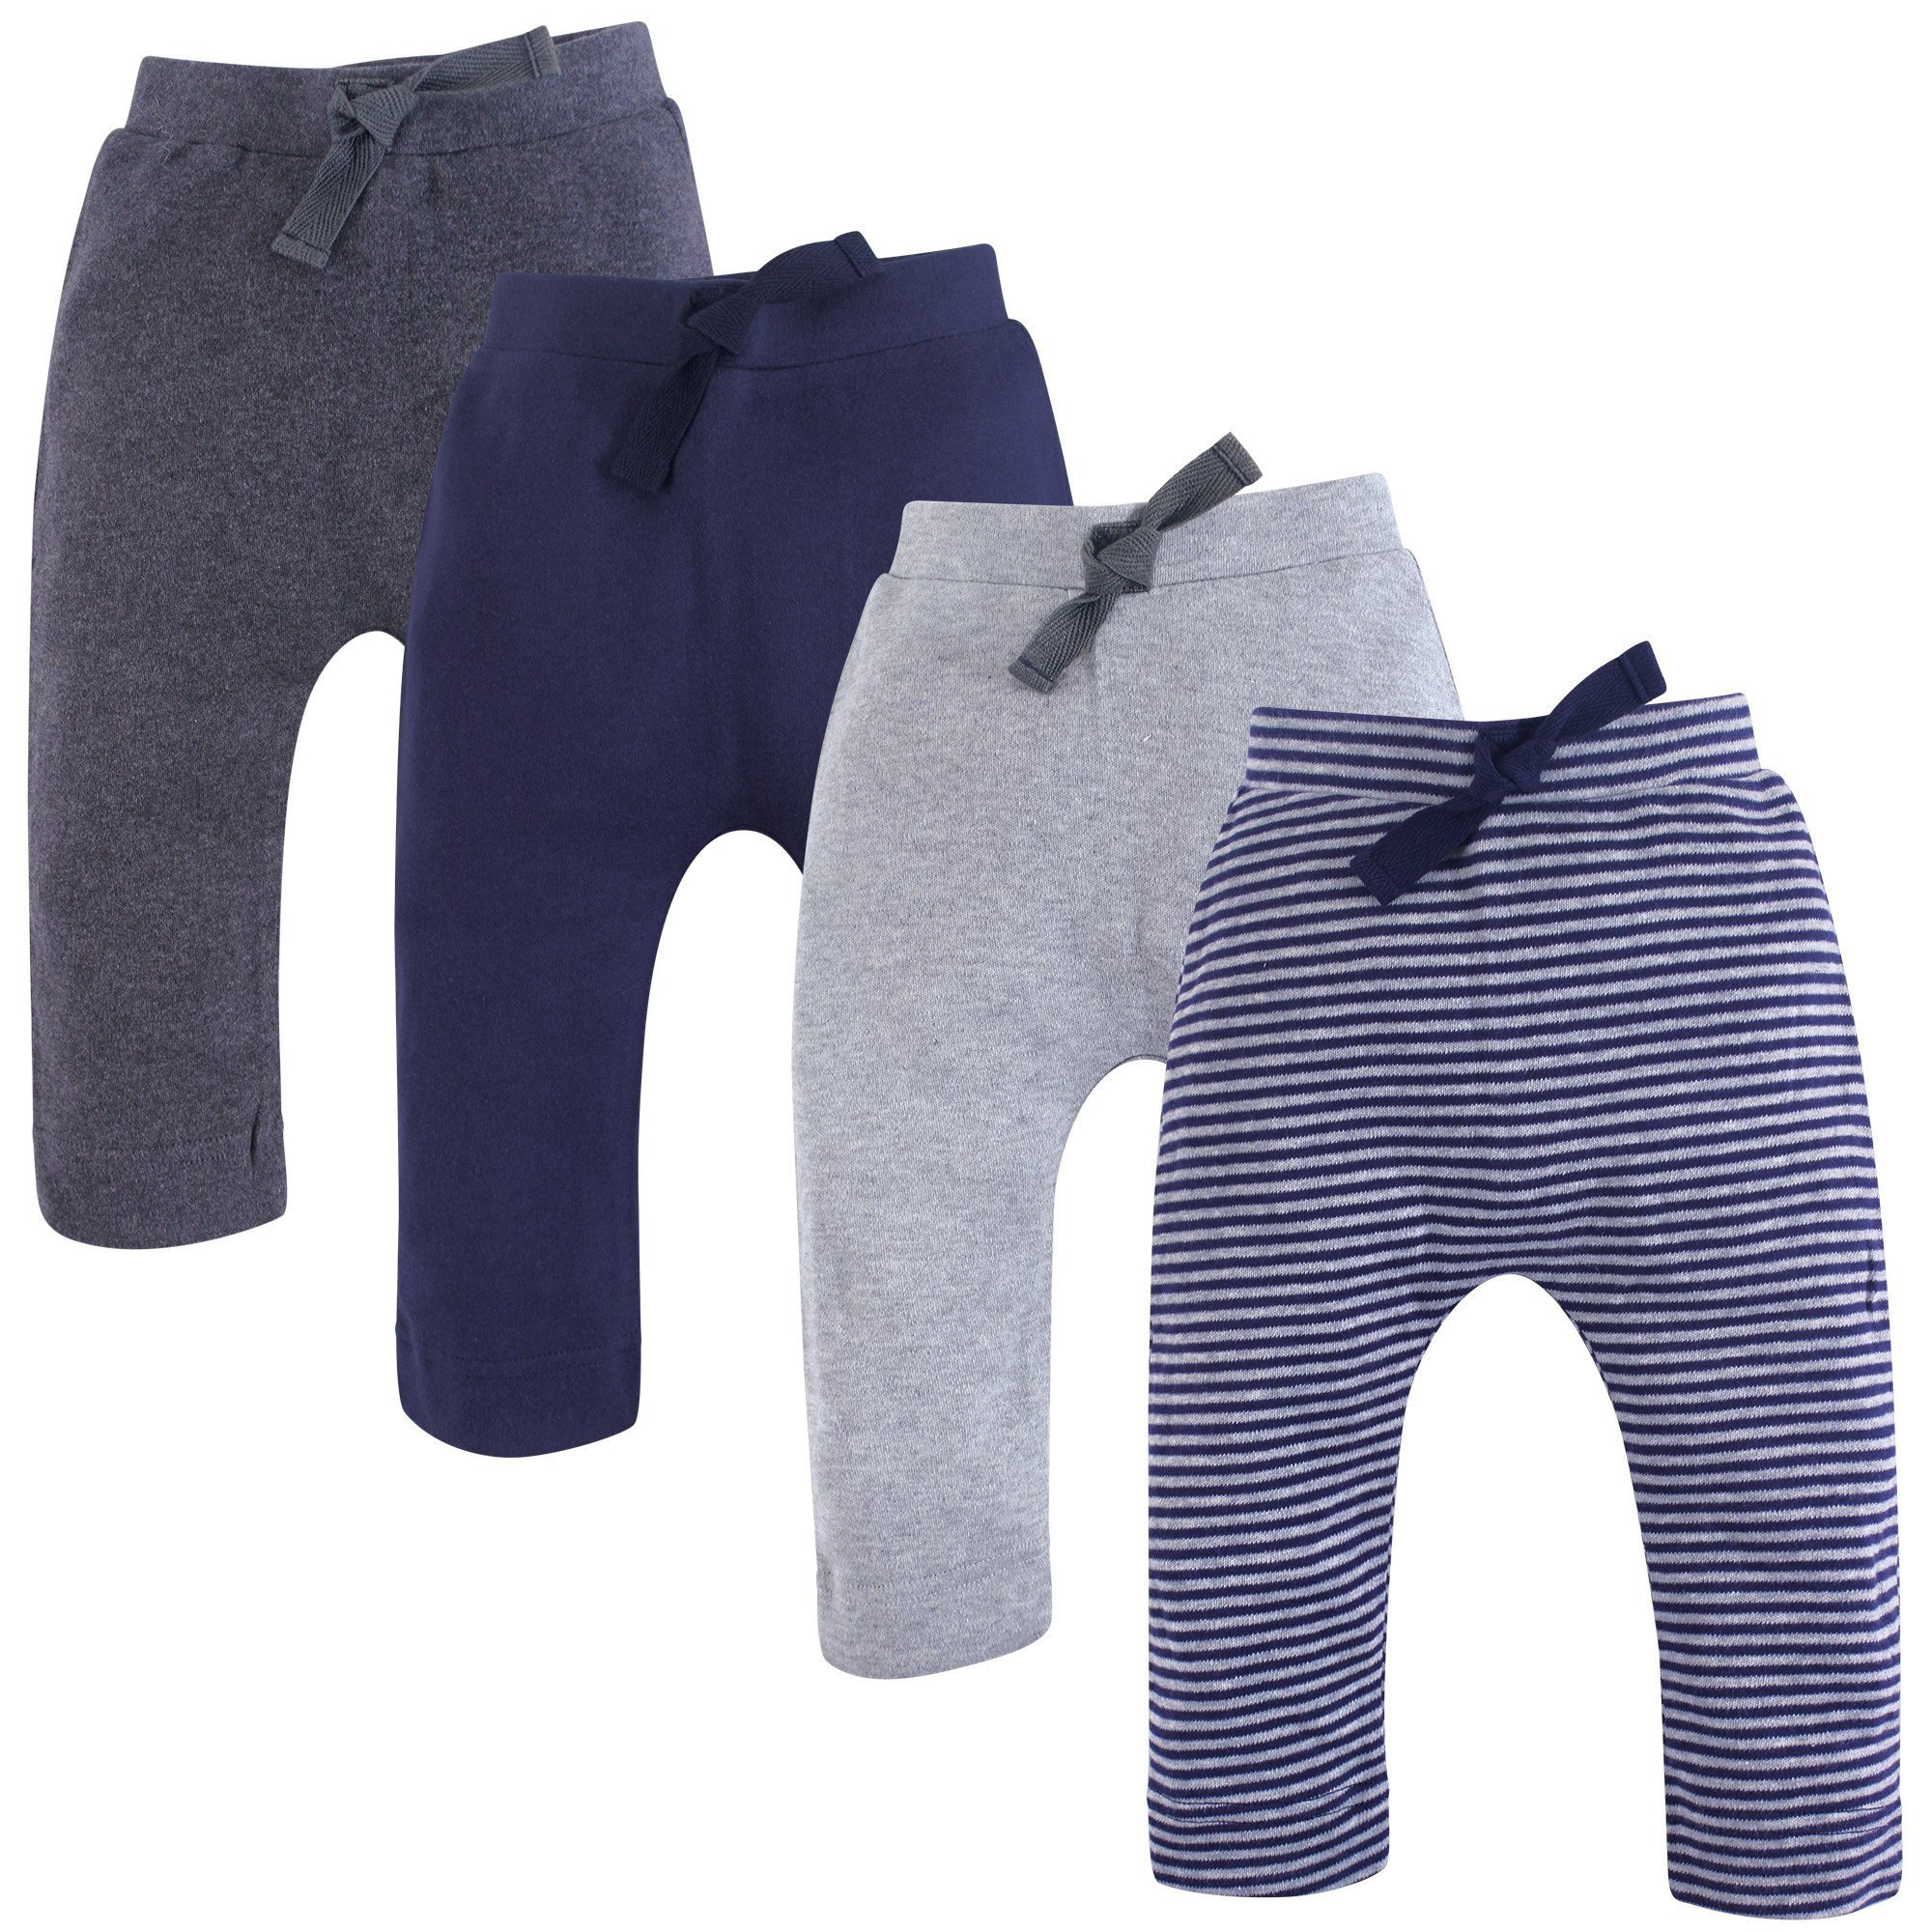 Touched by Nature Baby Organic Cotton Pants, Navy and Gray 4Pk, 6-9 Months